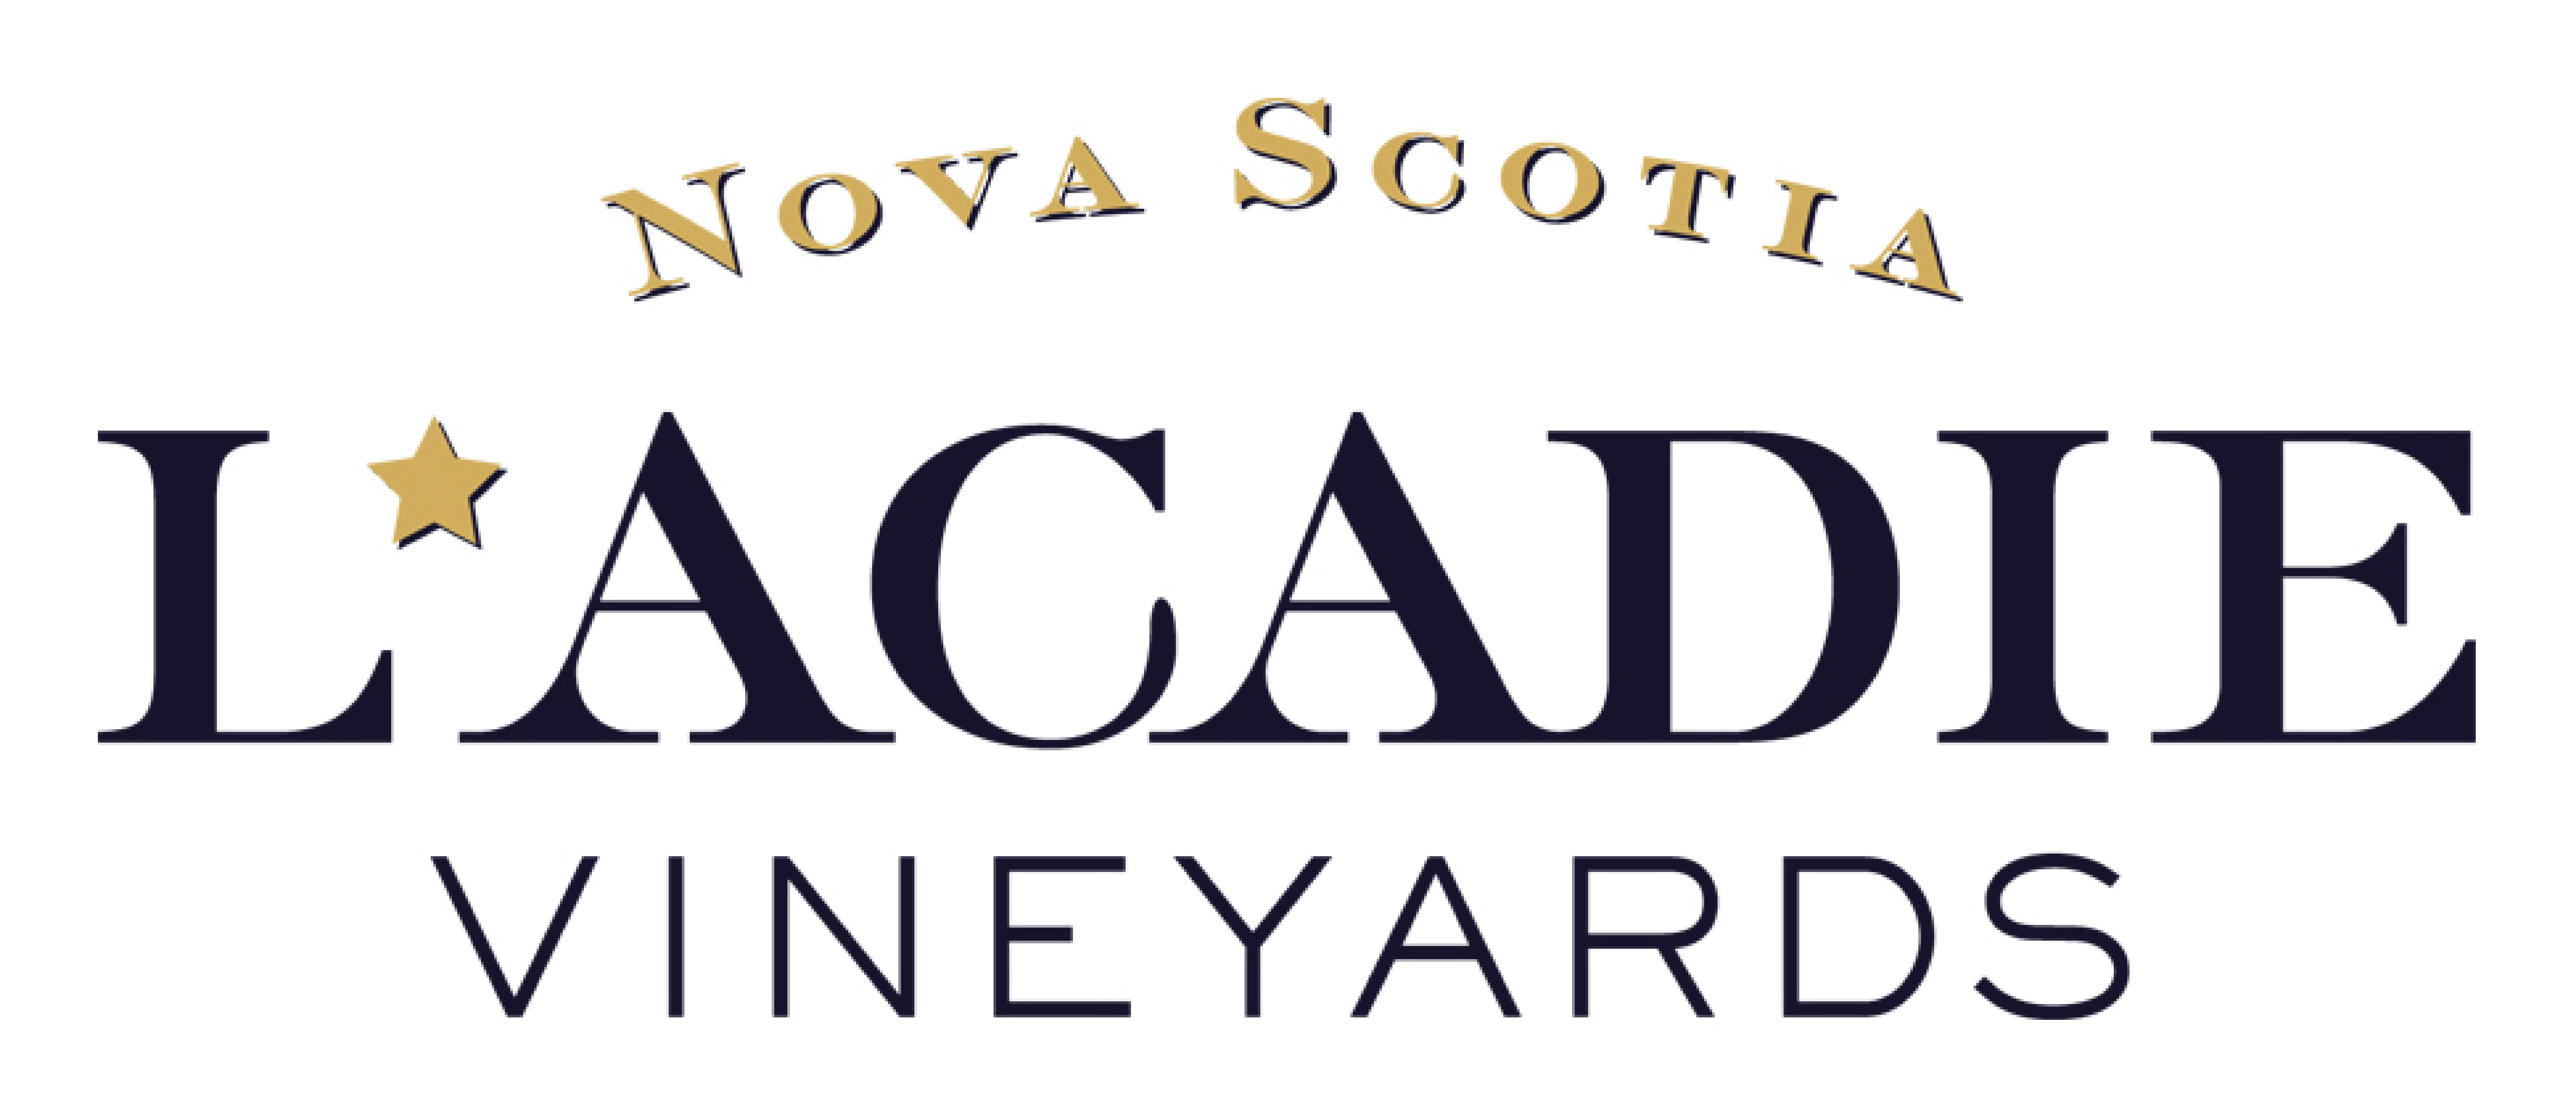 Lacadie Vineyards